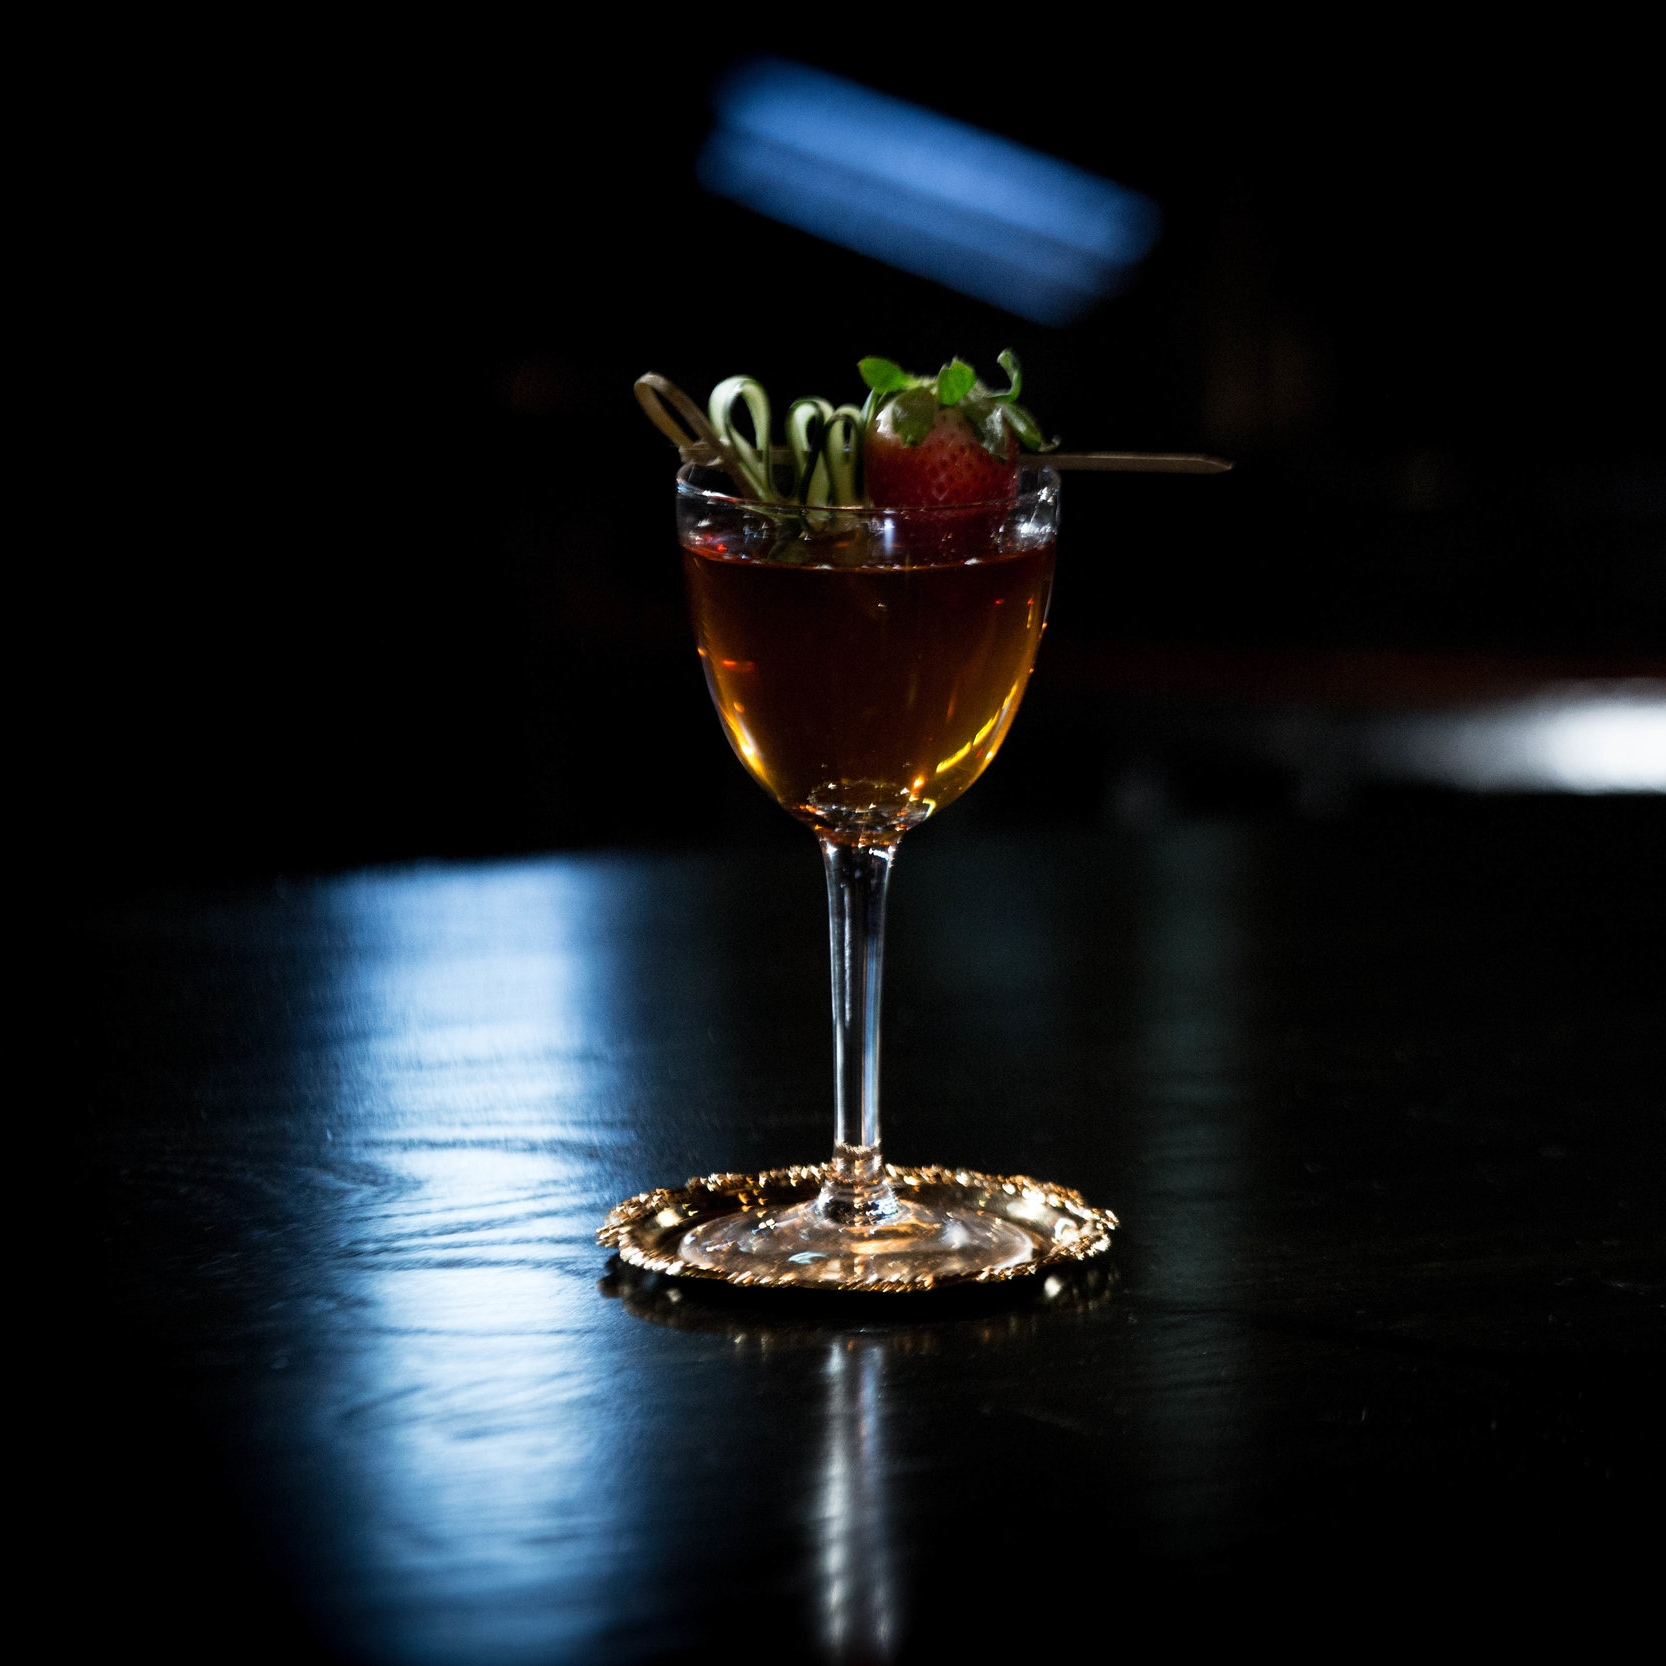 UMBRELLAS IN LONDON   • 2 oz. Manzanilla • 1 oz. Pimms  • 1 bar spoon Canne syrup • 1 dash Orange Bitters  • 1. Muddle   3 cucumber wheels and 1 sprig of mint. • 2. Add remaining ingredients in a mixing glass and stir. • 3. Fine strain into a cocktail glass. • 4. Garnish with cucumber peel skewered through a strawberry.